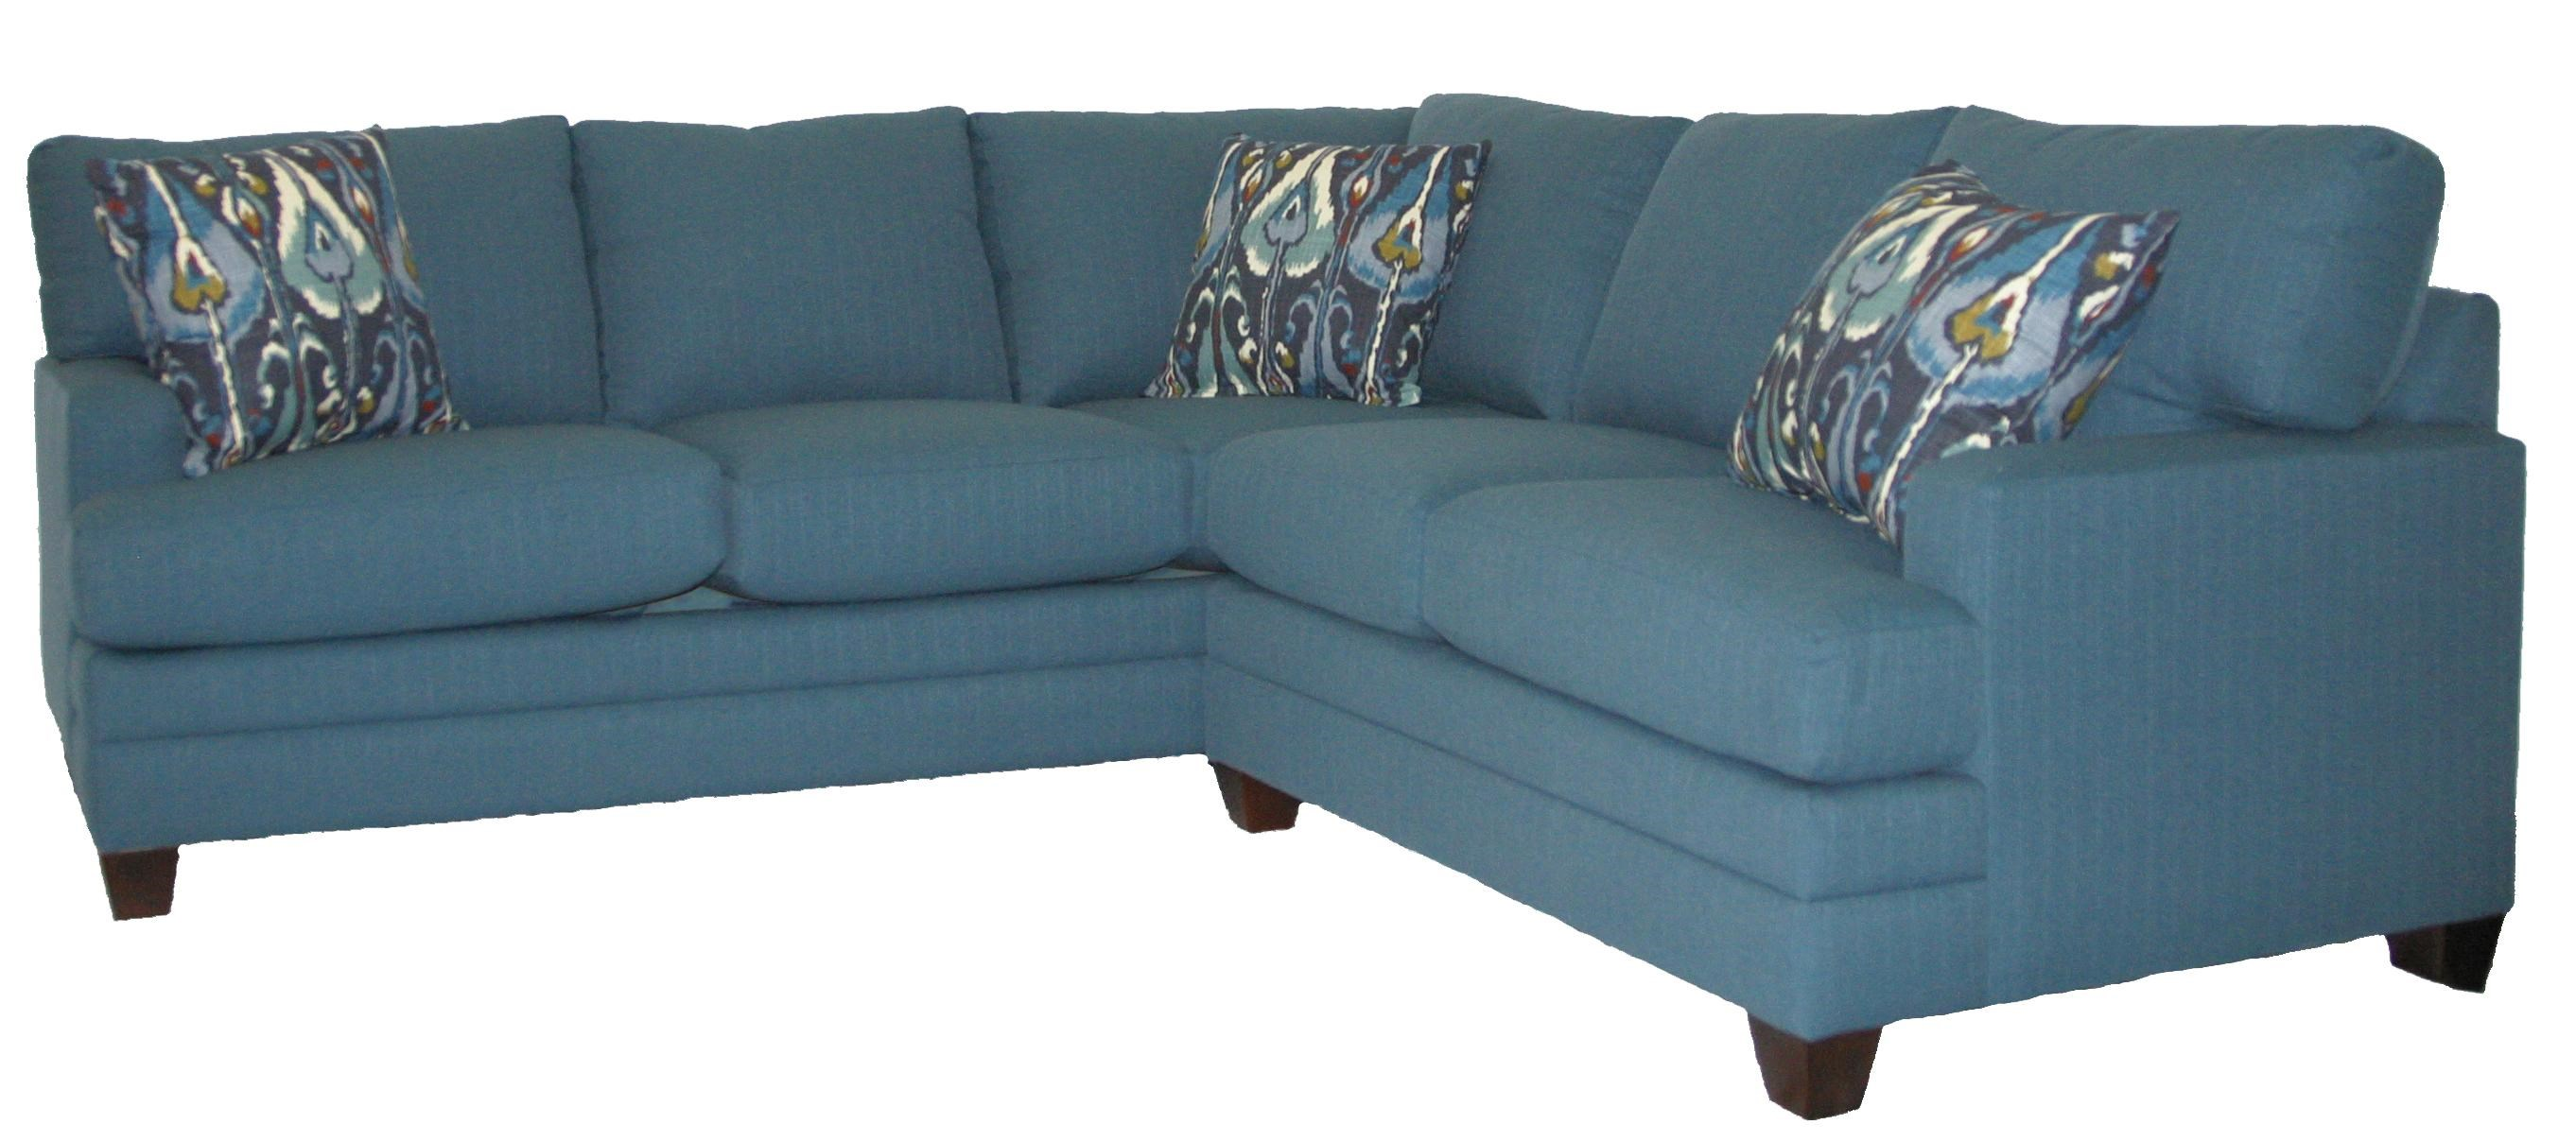 Fullsize Of L Shaped Sectional